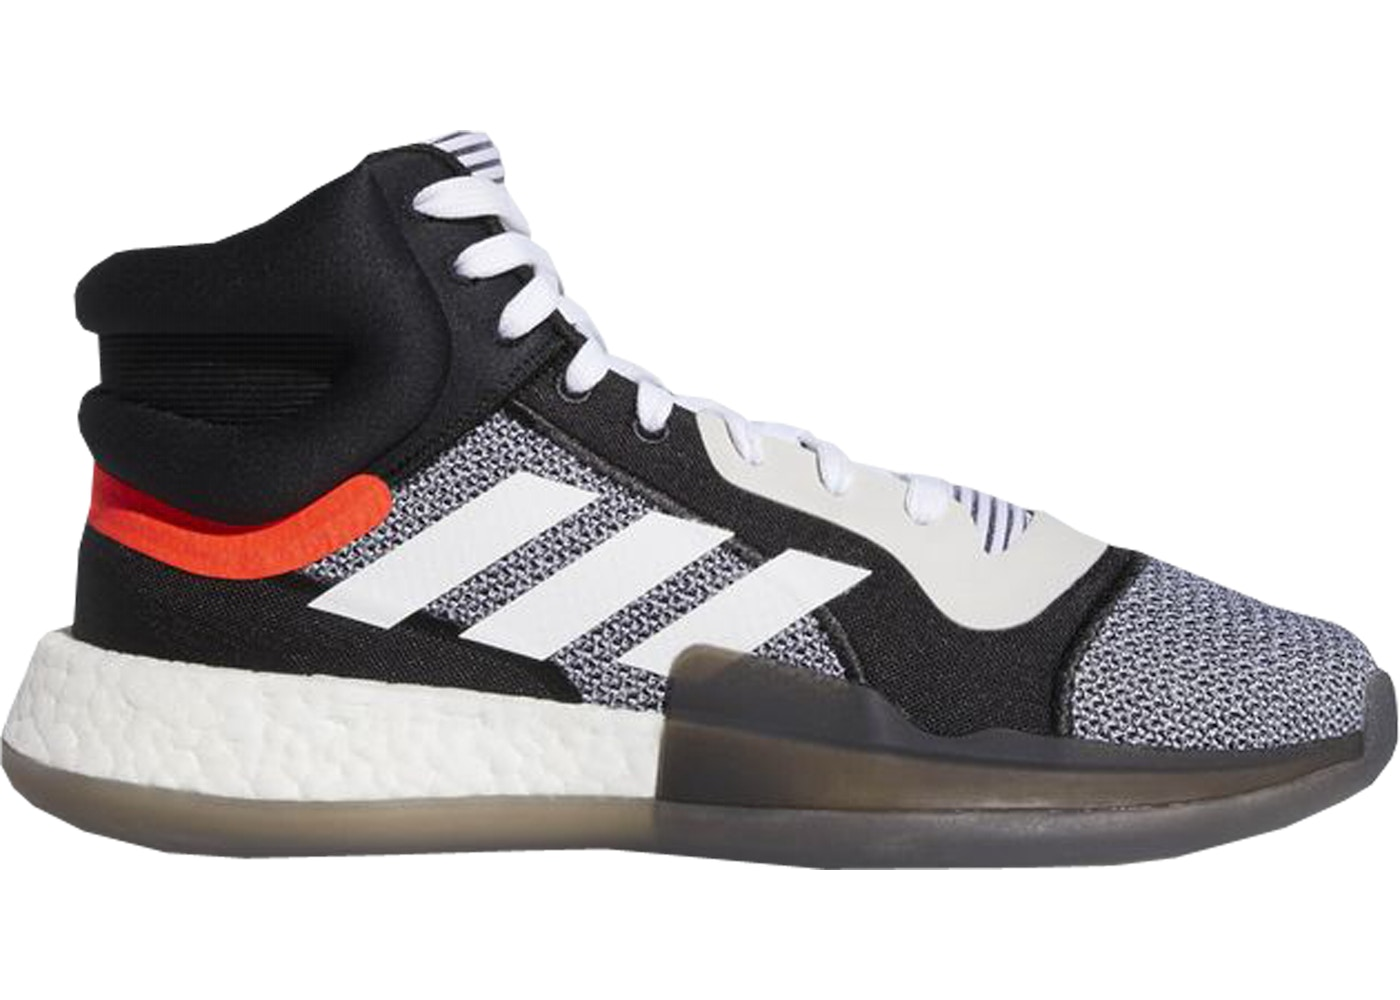 41bac469 adidas Size 7.5 Shoes - New Highest Bids